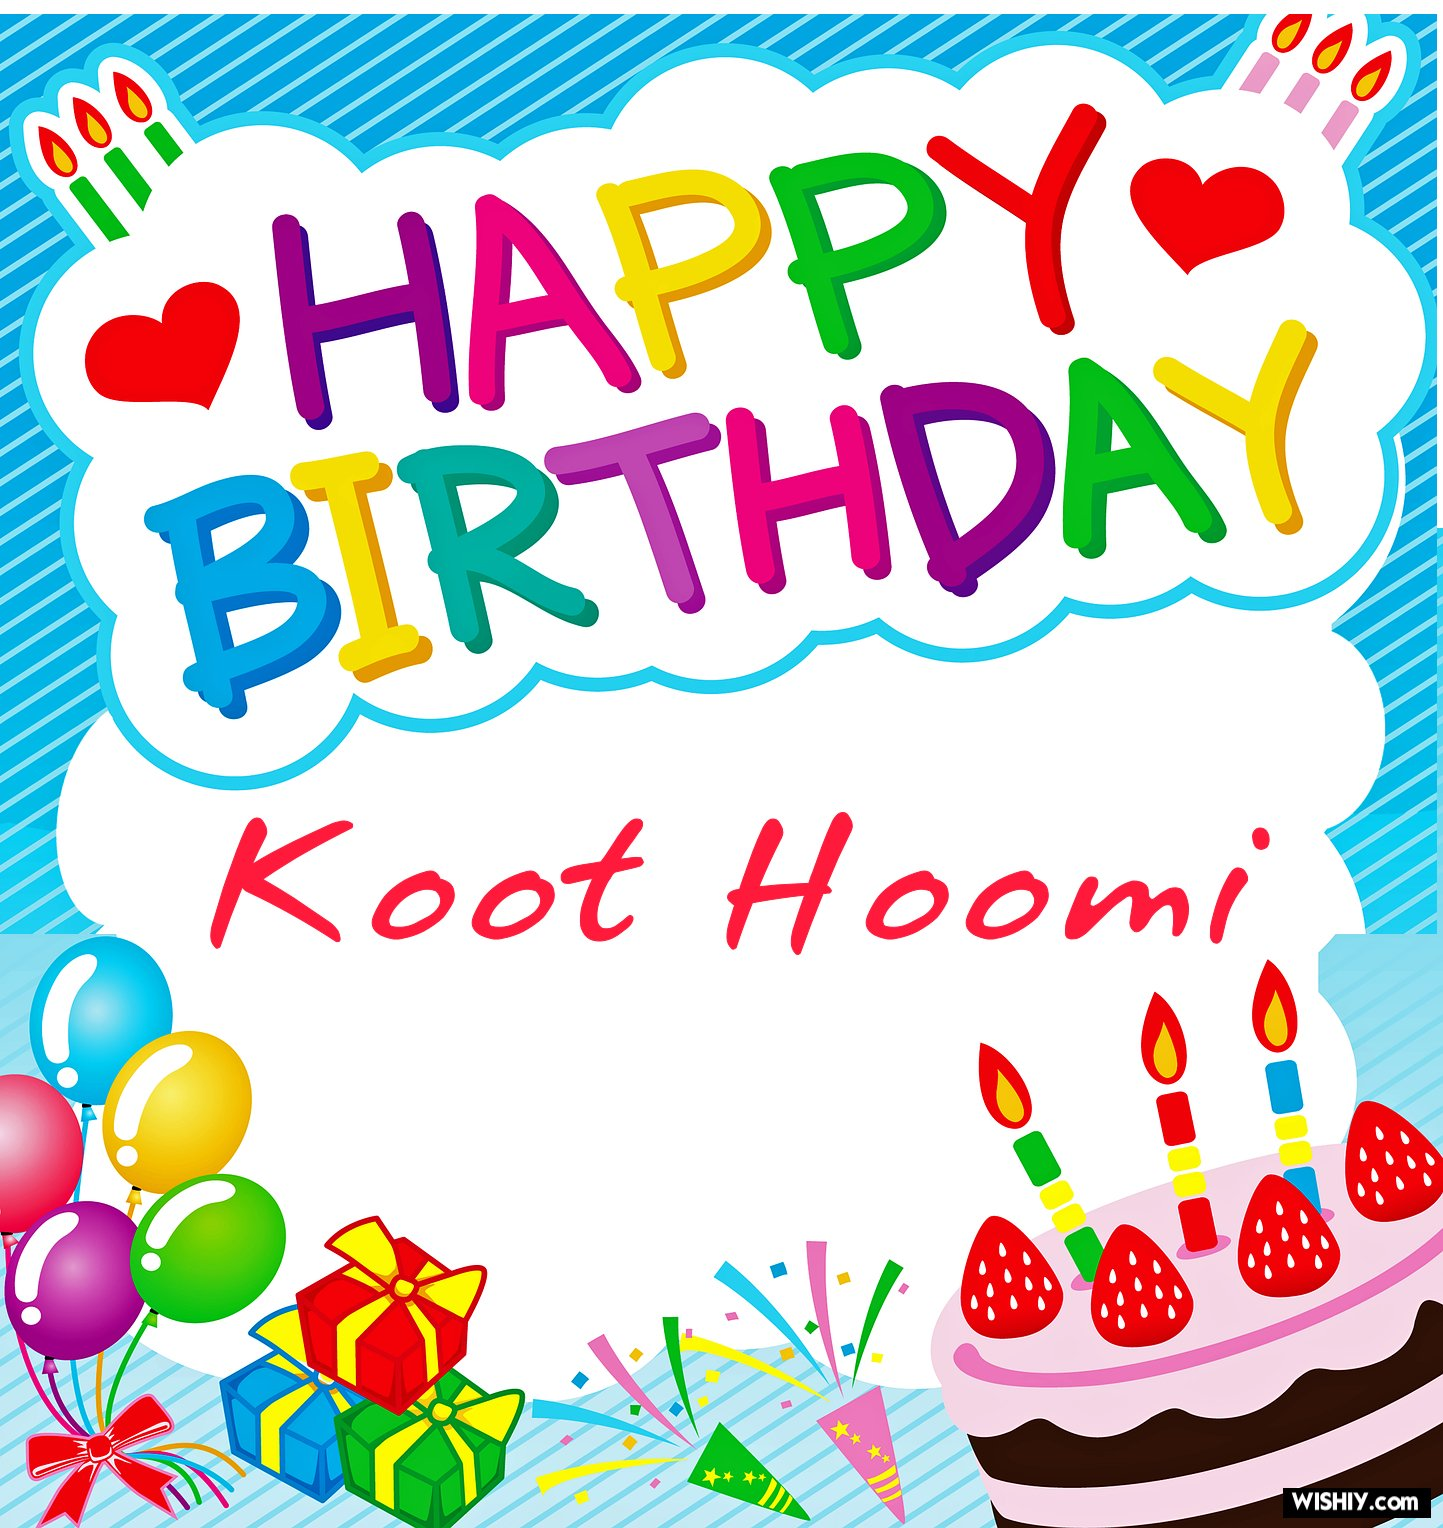 25 Best Birthday Images For Koot Hoomi Instant Download 2020